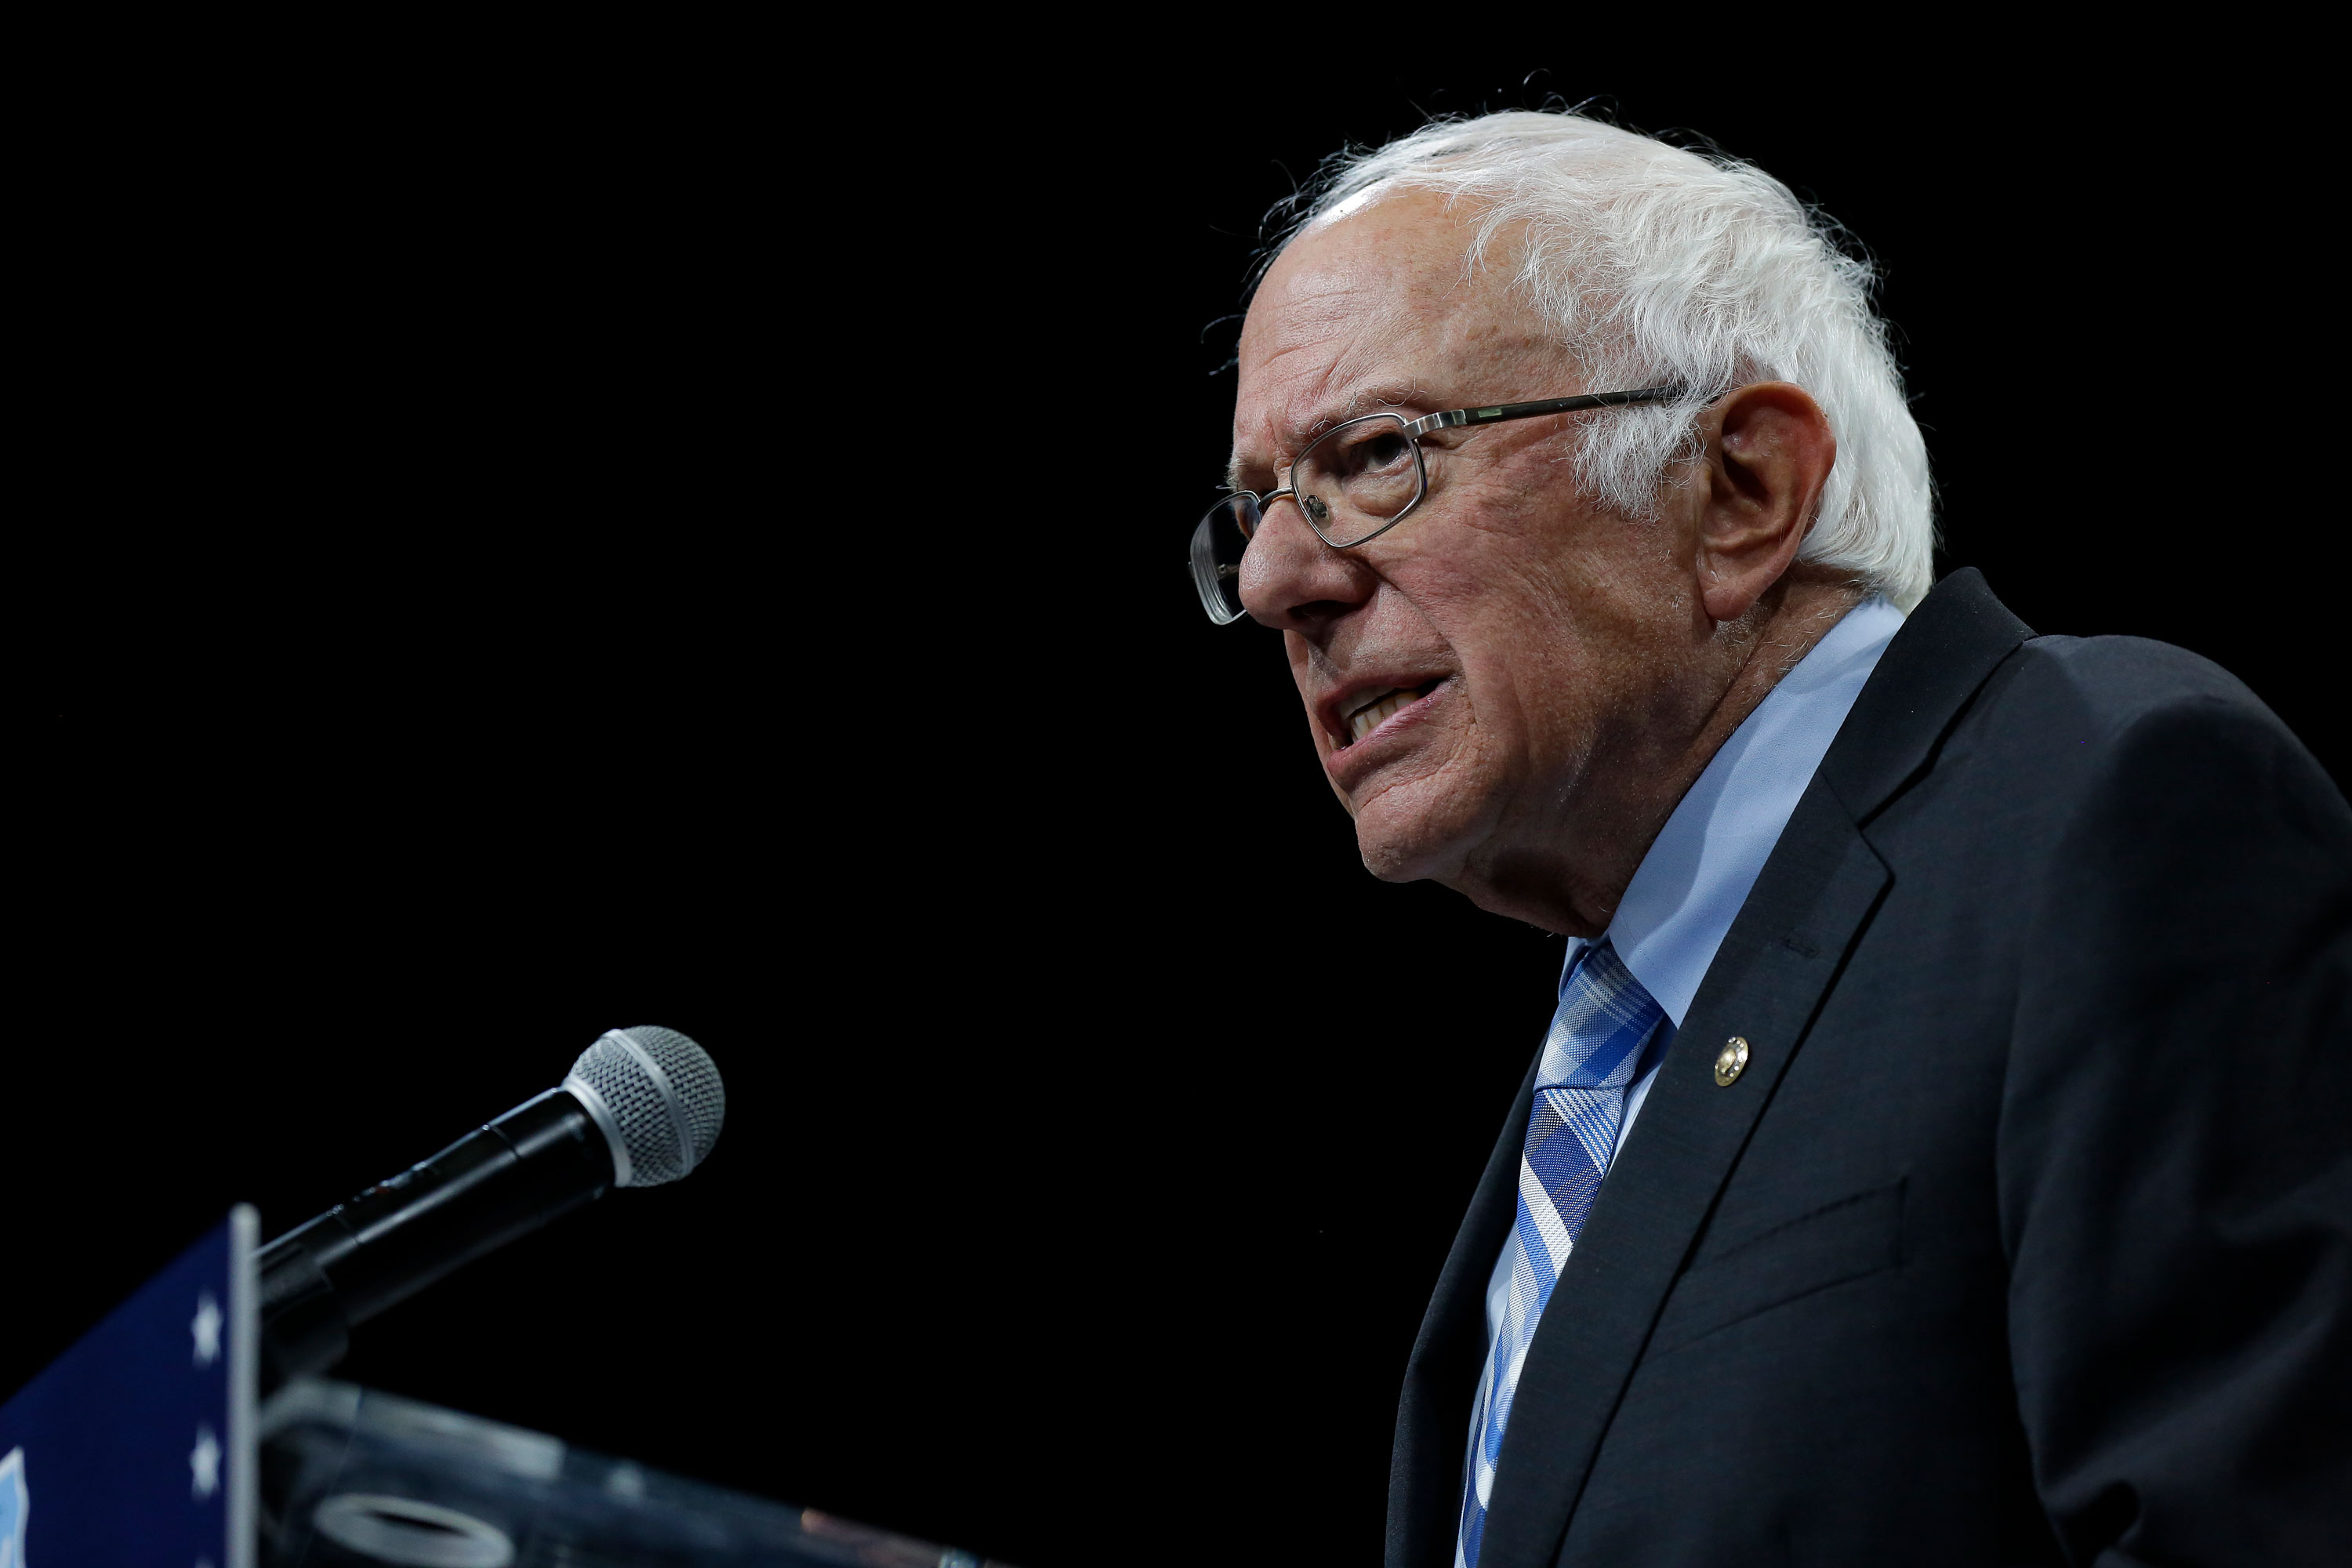 Nevada Democratic Party says caucus results are fully reported